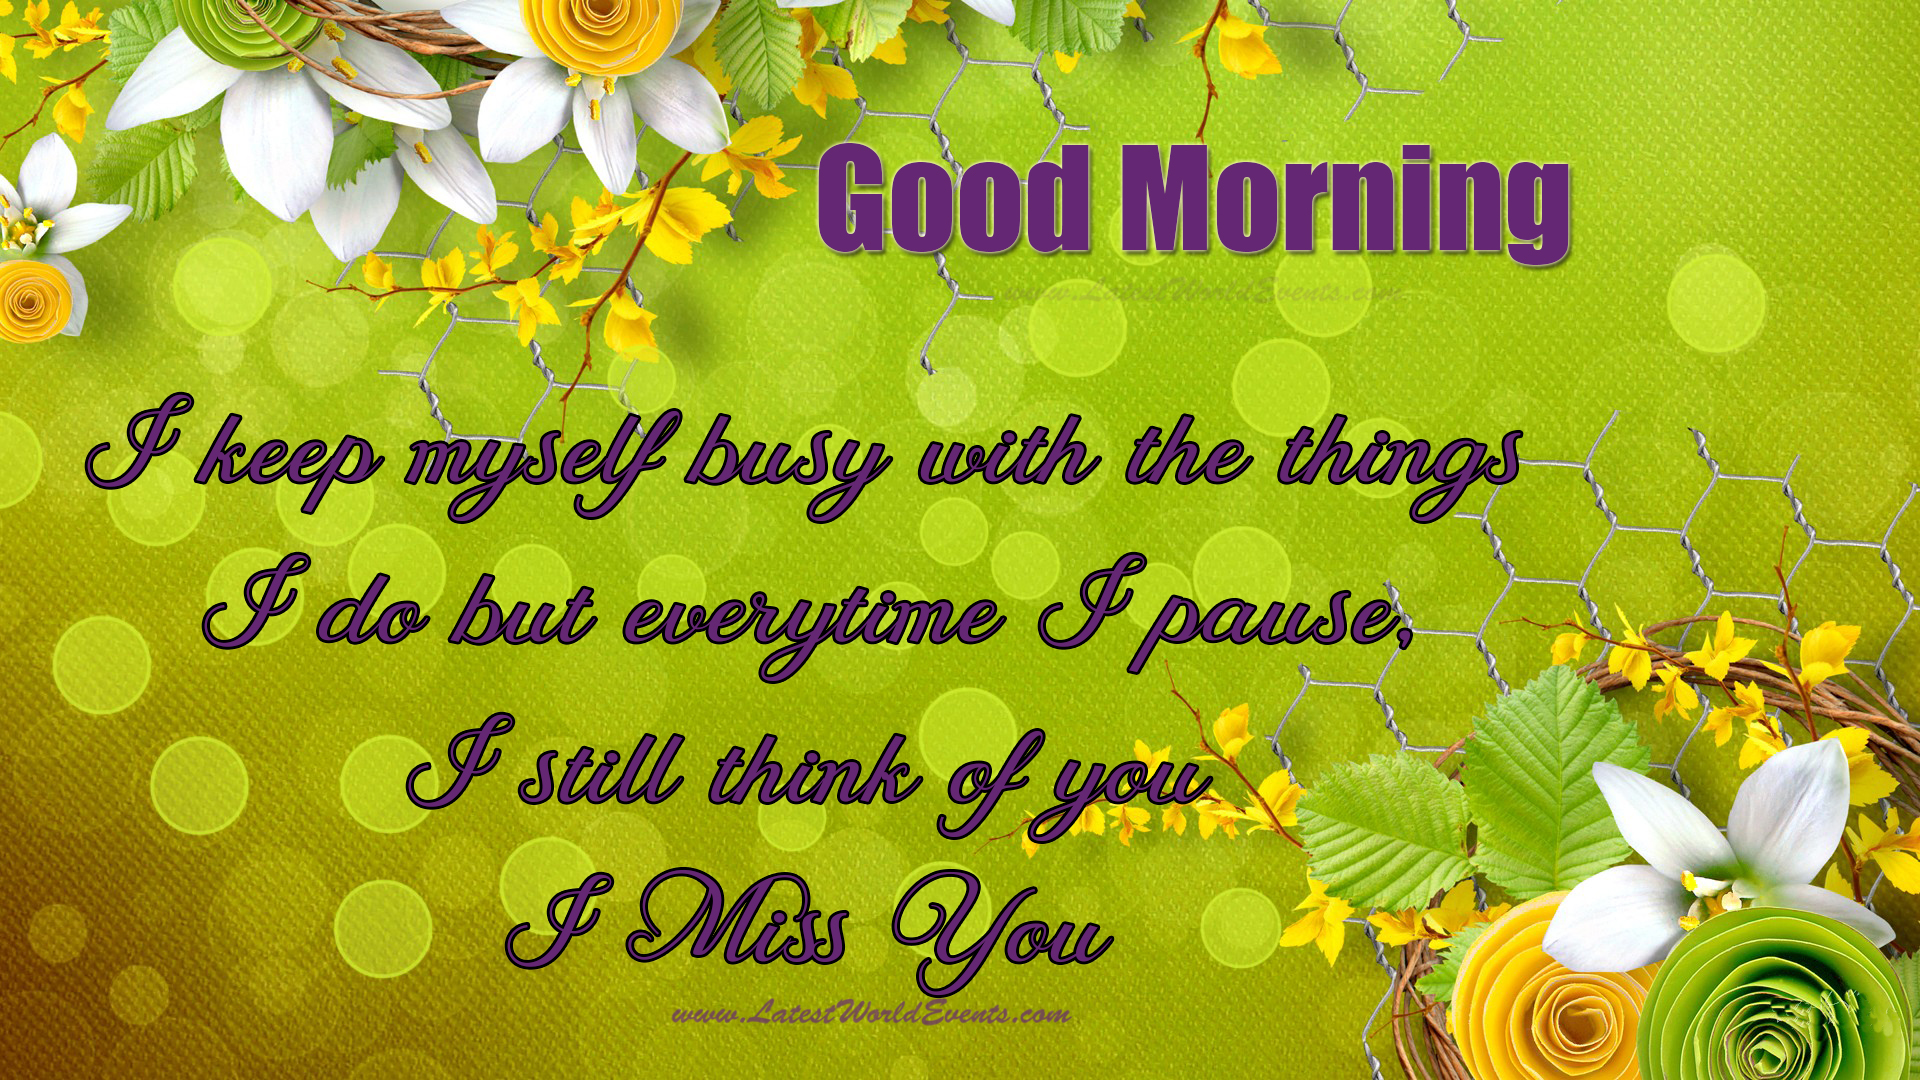 Good morning have a nice day messages latest world events